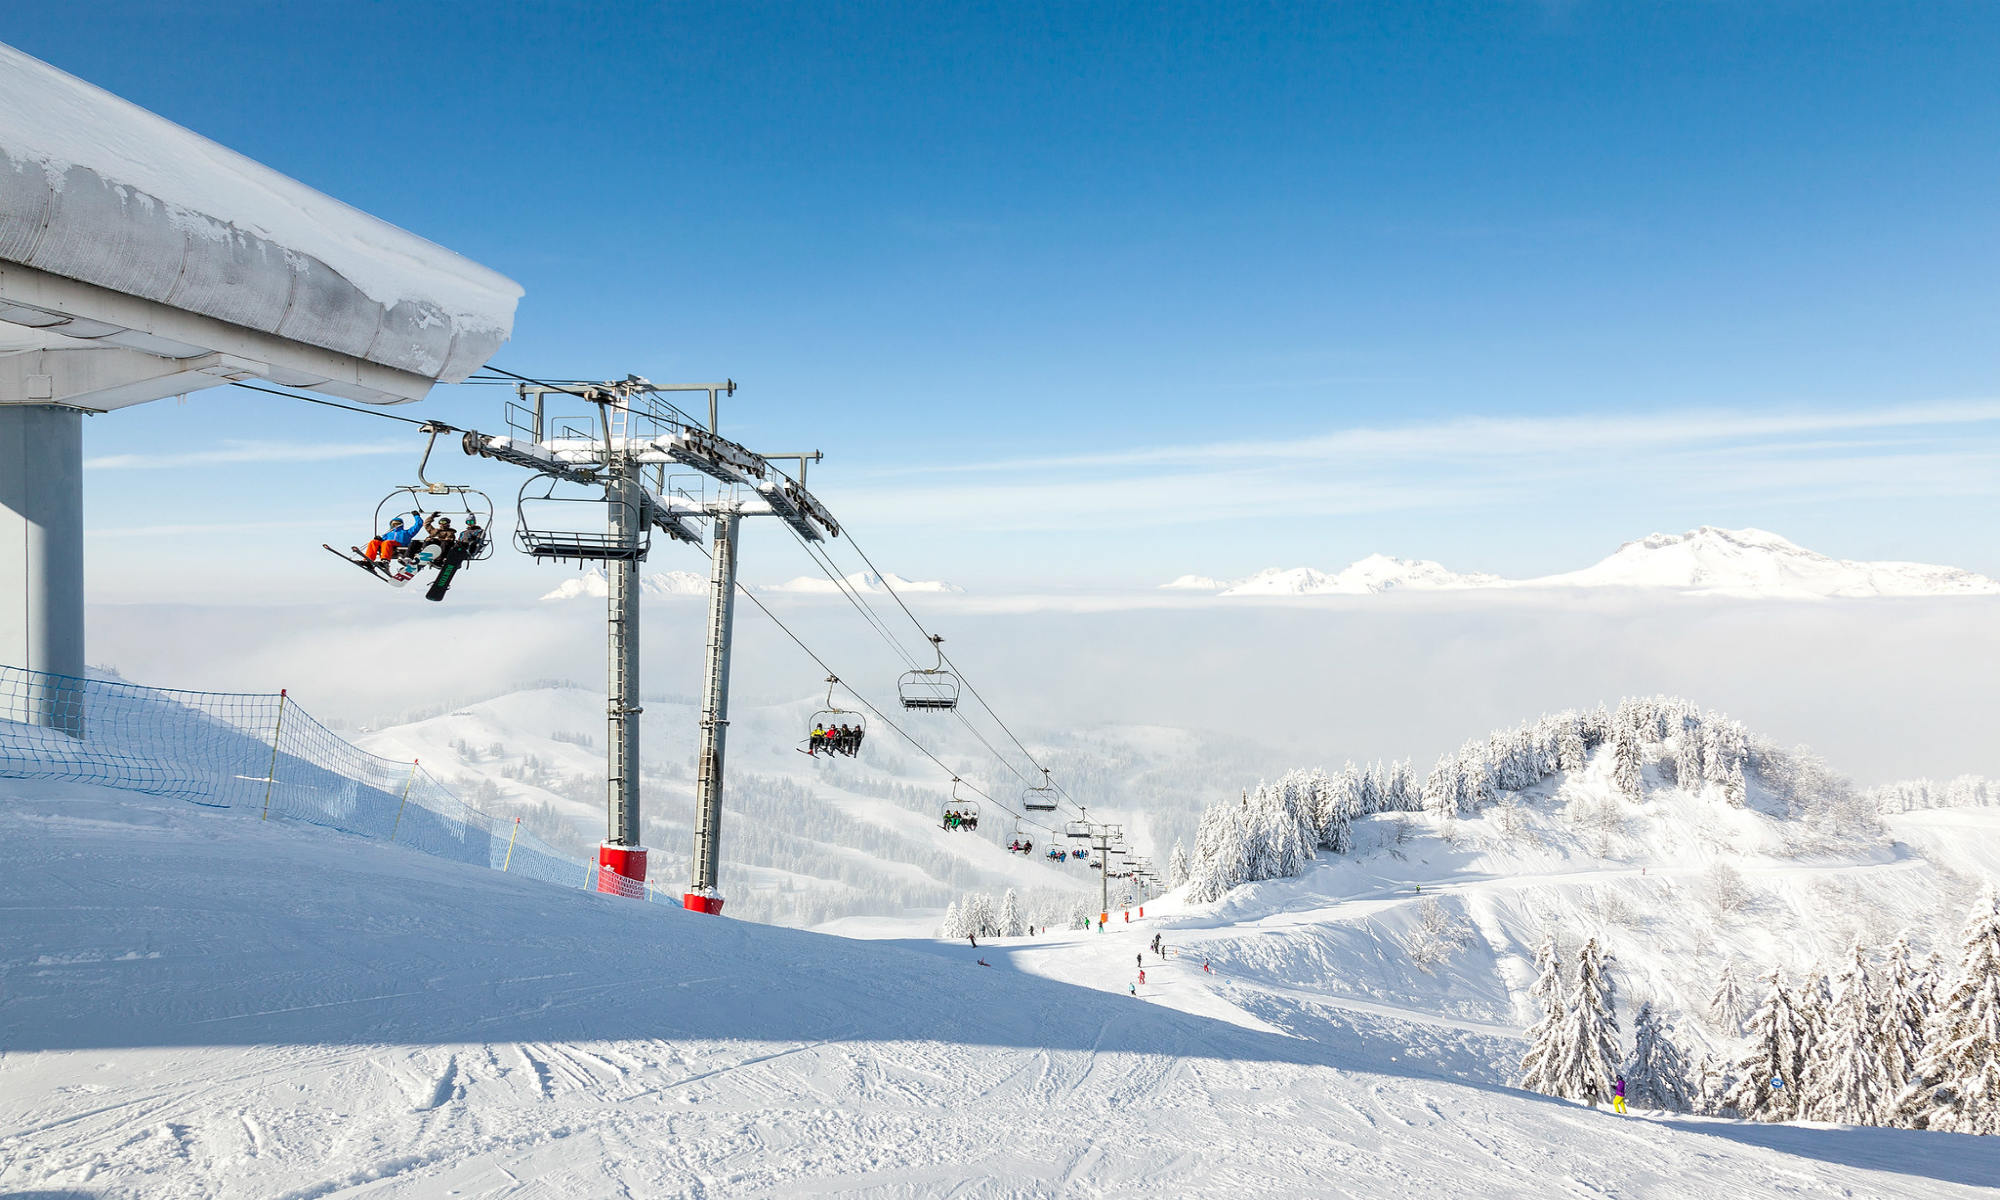 High mountain view over the snowy pistes at Morzine